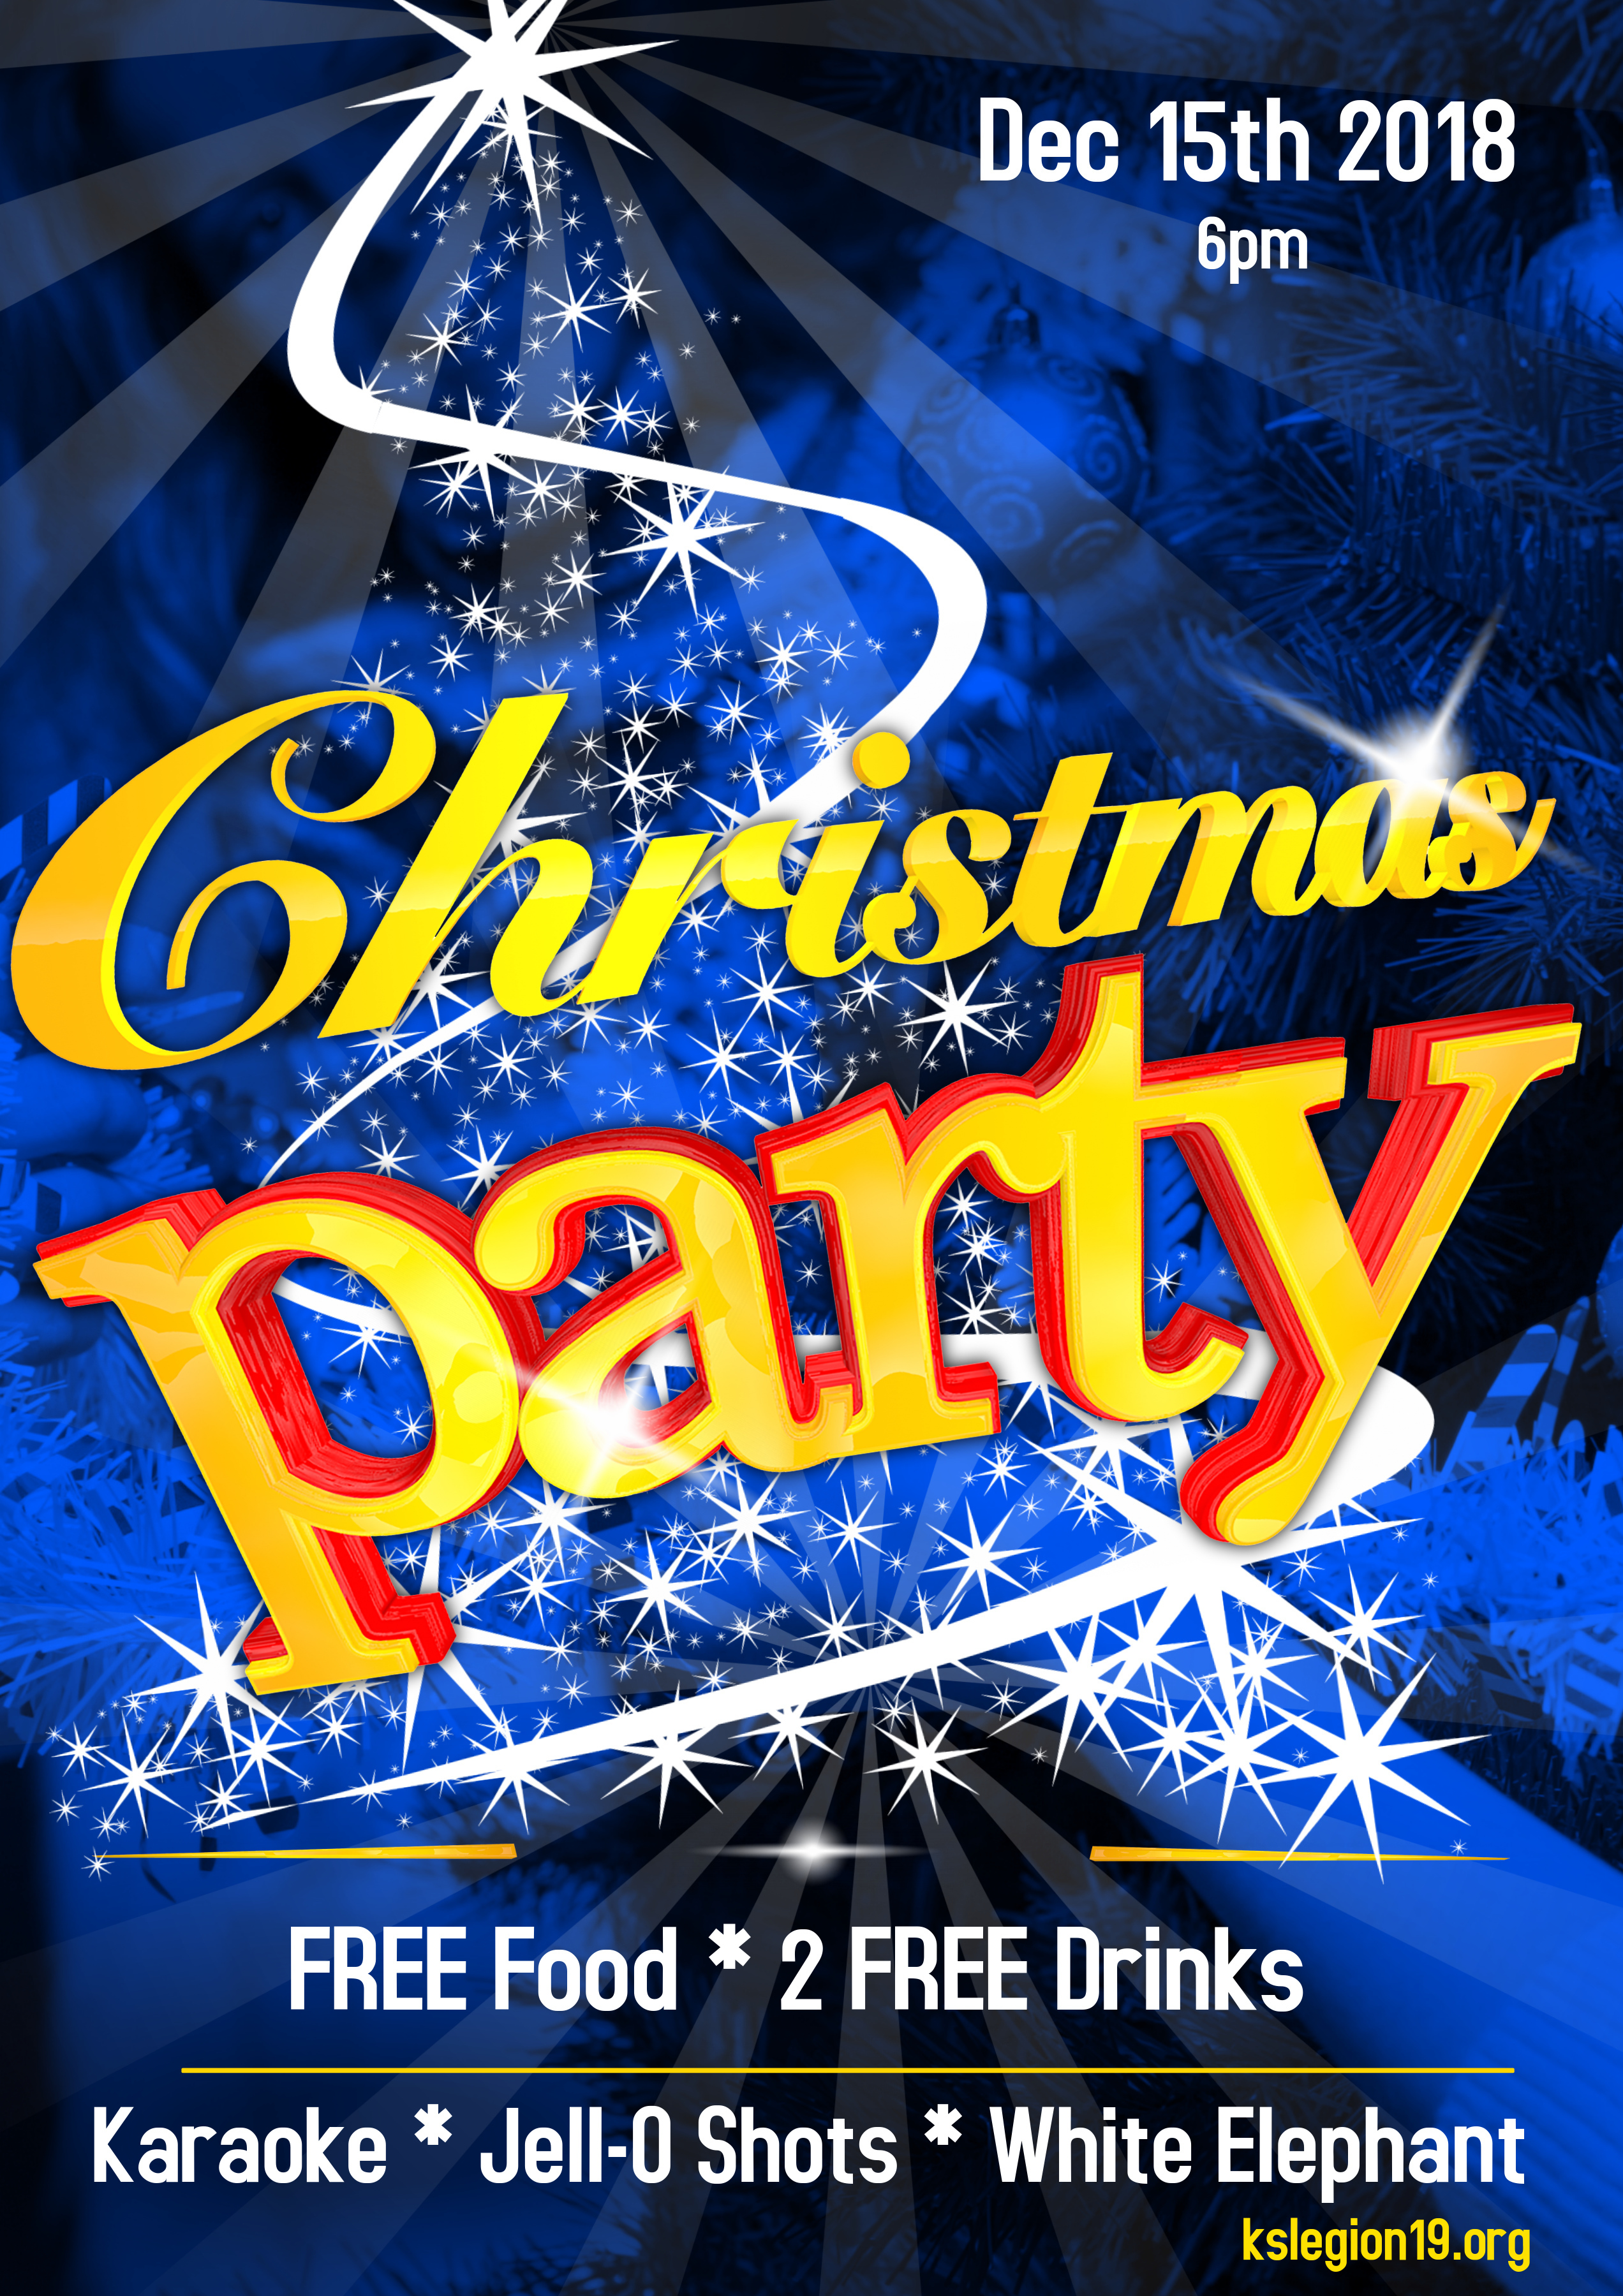 Karaoke Christmas Party.Post 19 Christmas Party December 15th At 6pm American